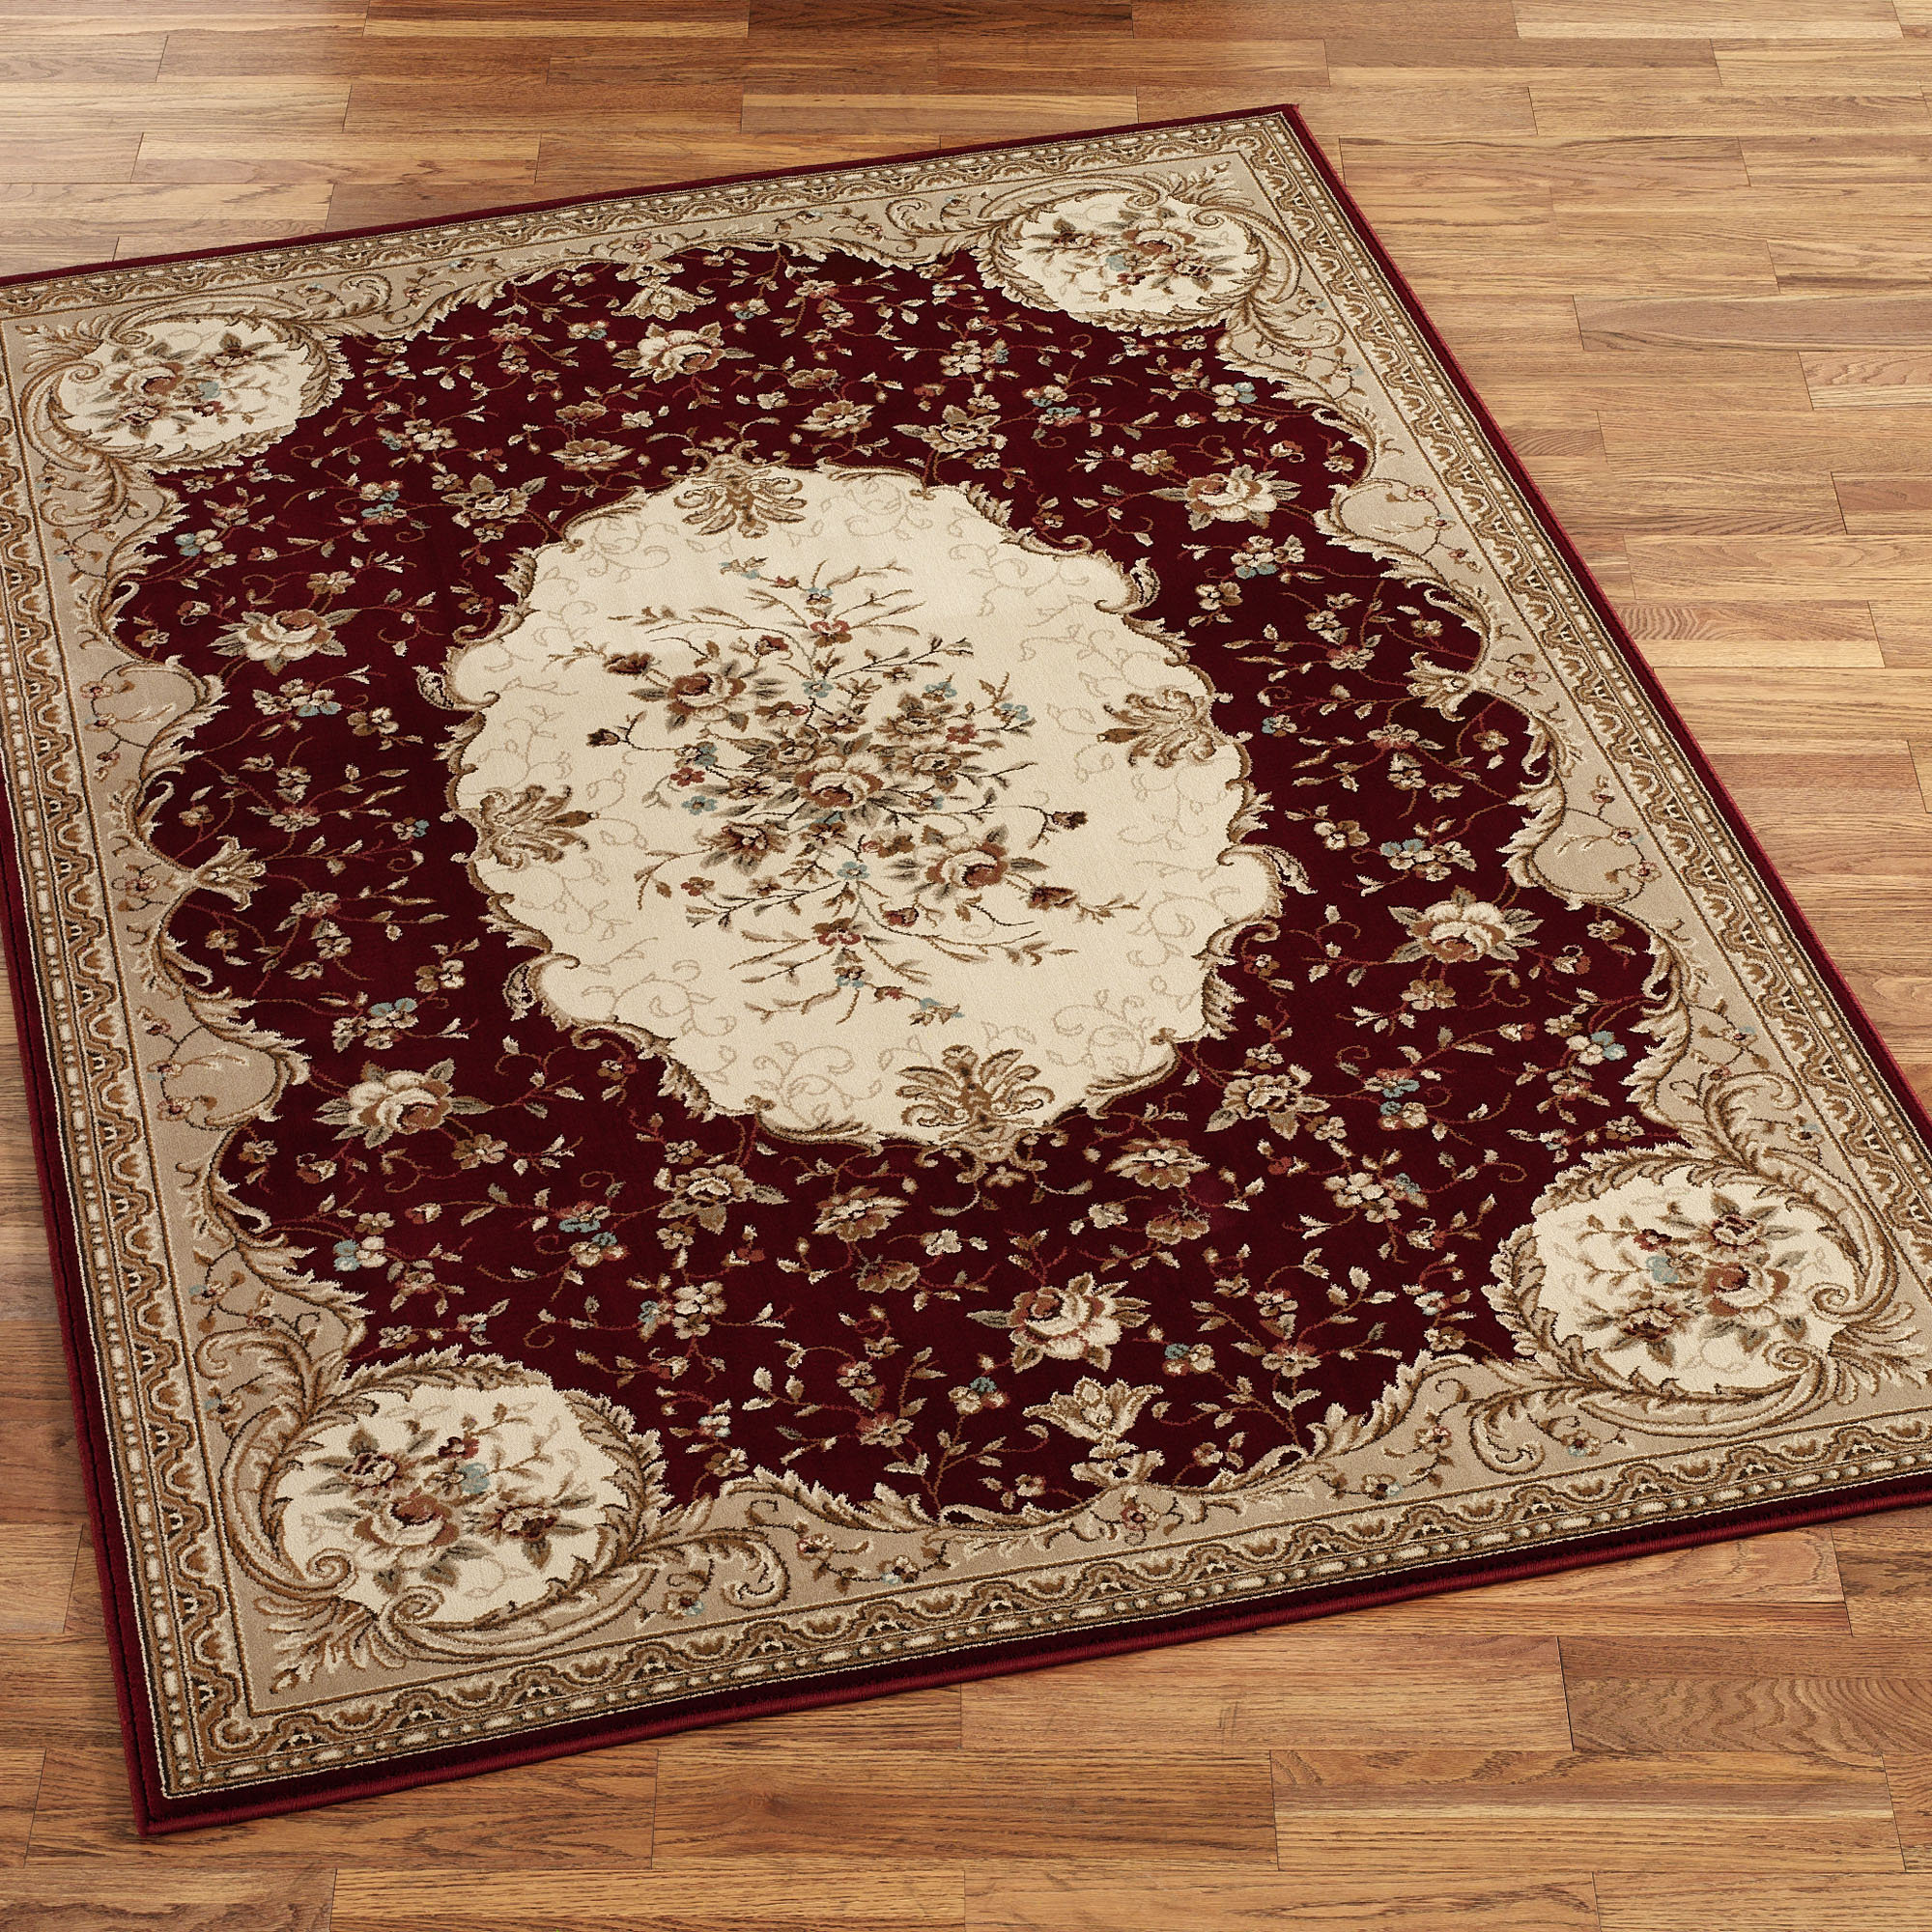 lowes rugs in red and mocca with charming floral motif for floor decor ideas